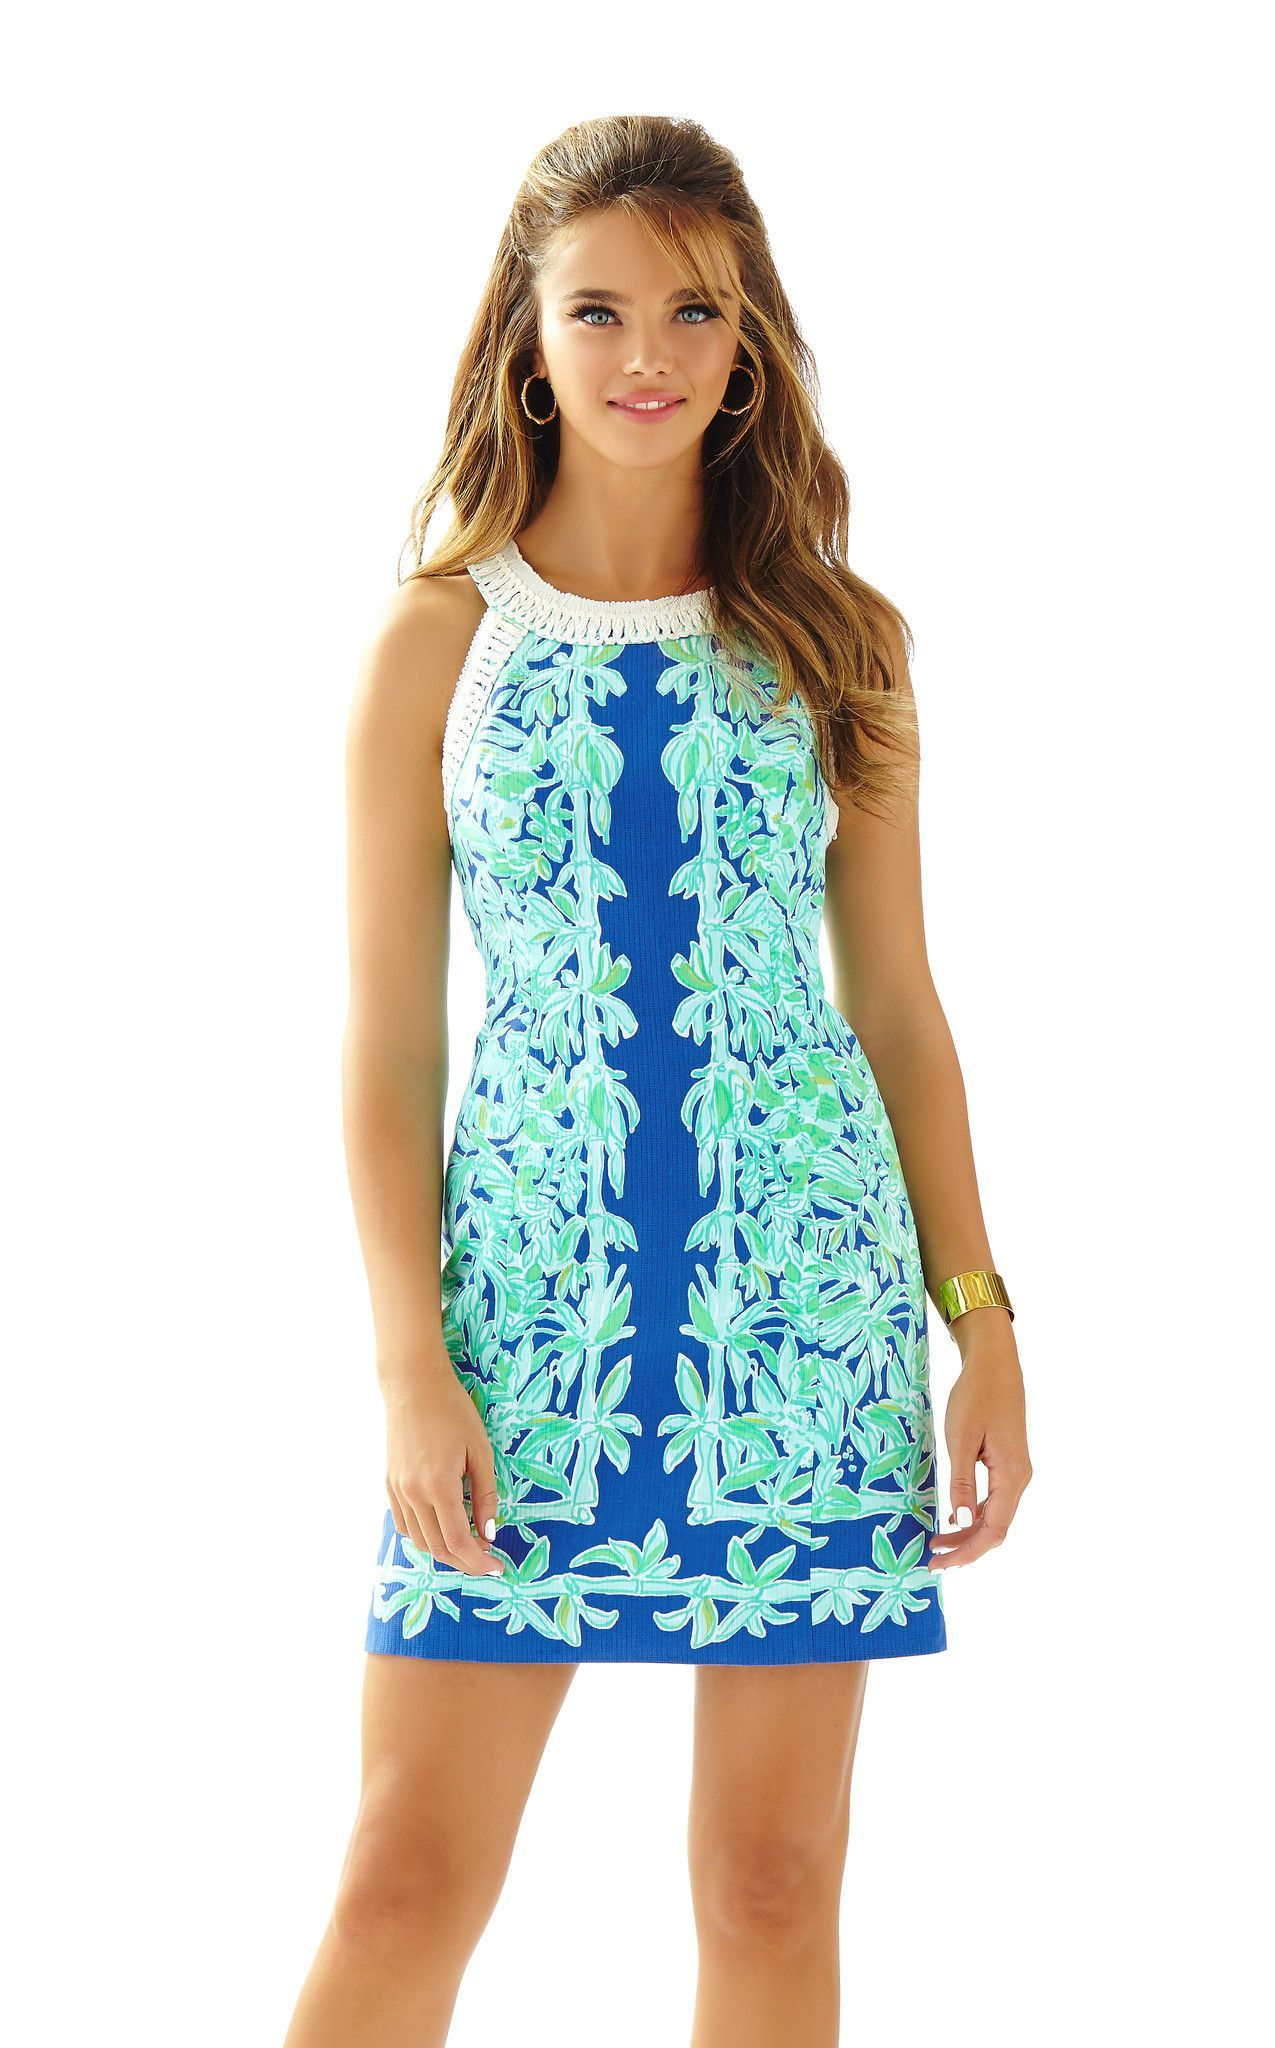 cc65fac821fed8 Lea Shift in Poolside Blue Koala On the Wild | Lilly Pulitzer ...